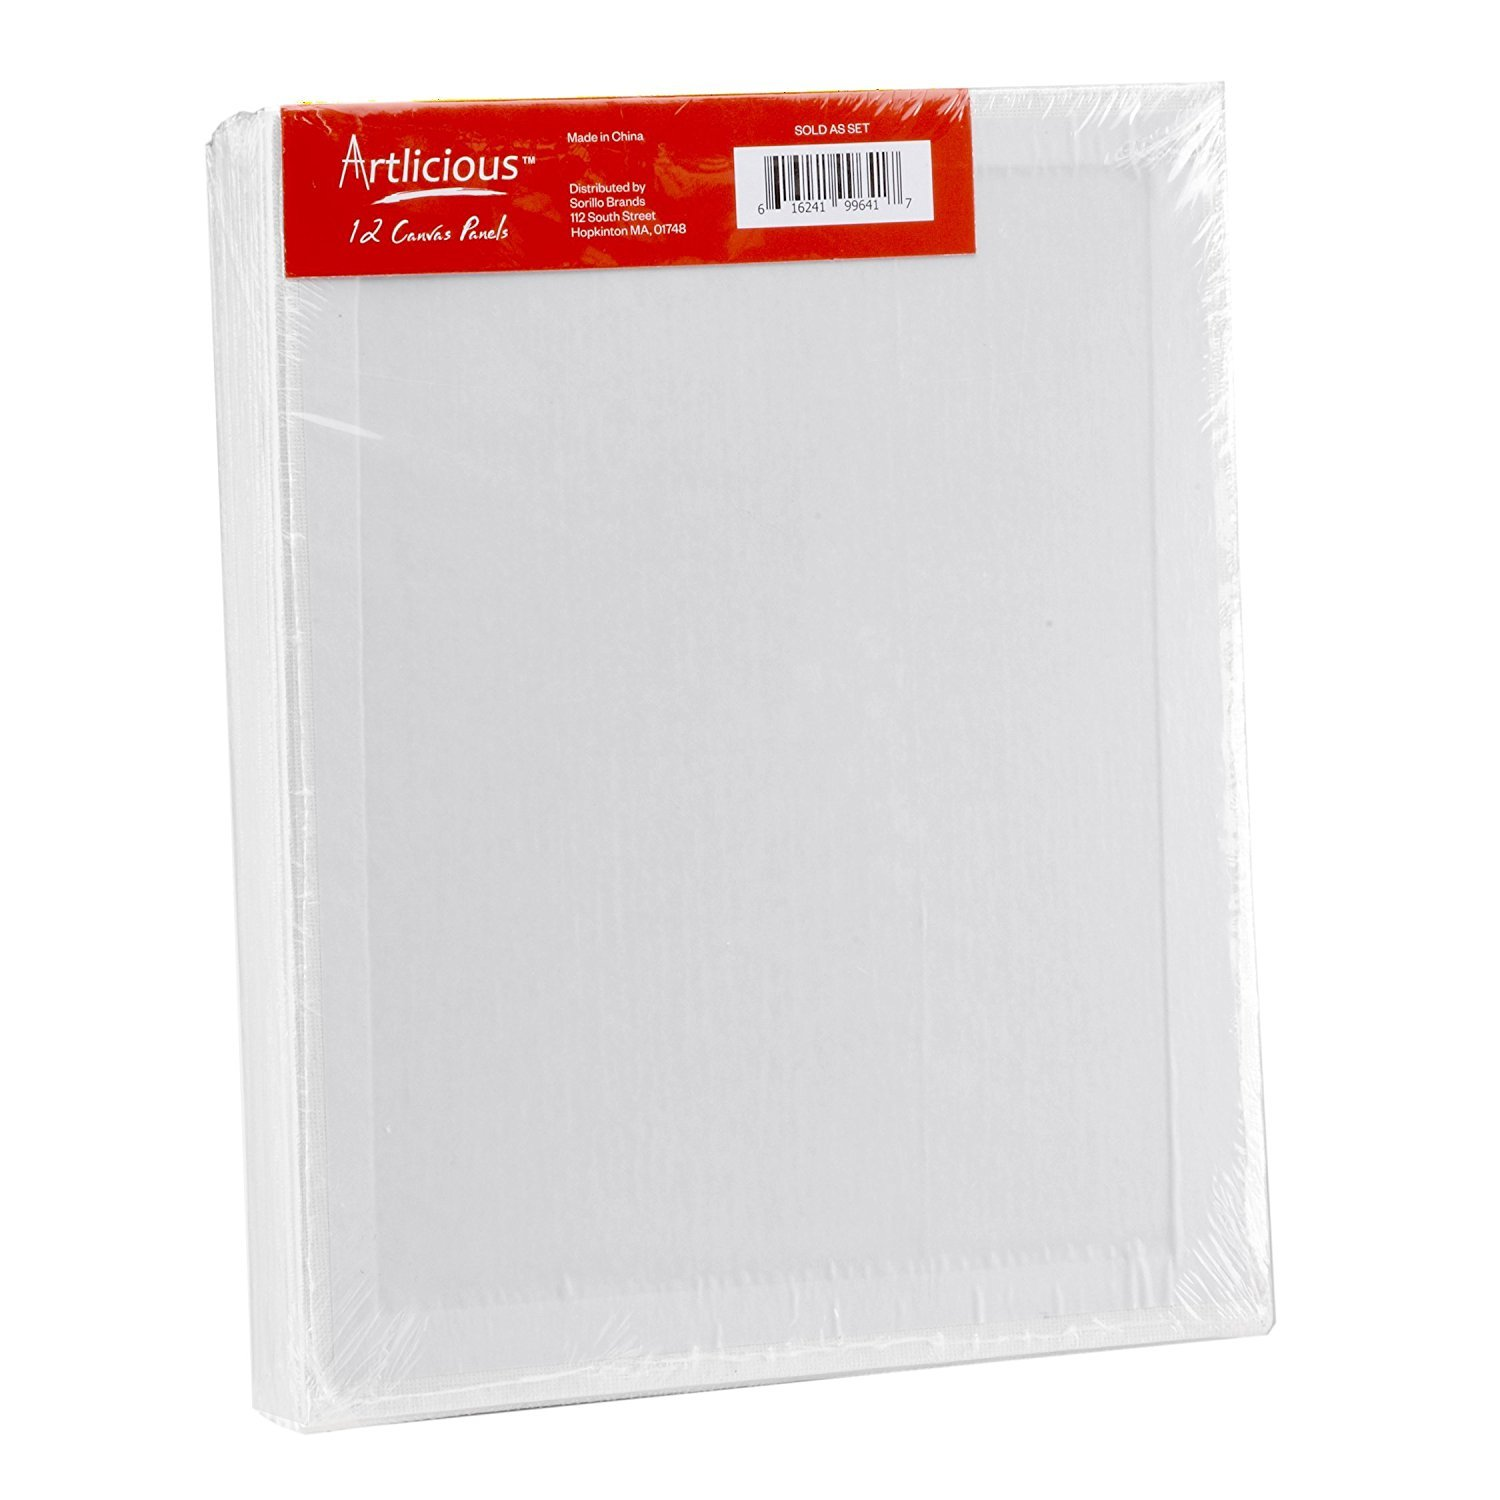 Artlicious Canvas Panels 48 Pack - 8''X10'' Super Value Pack- Artist Canvas Boards for Painting by Artlicious (Image #2)